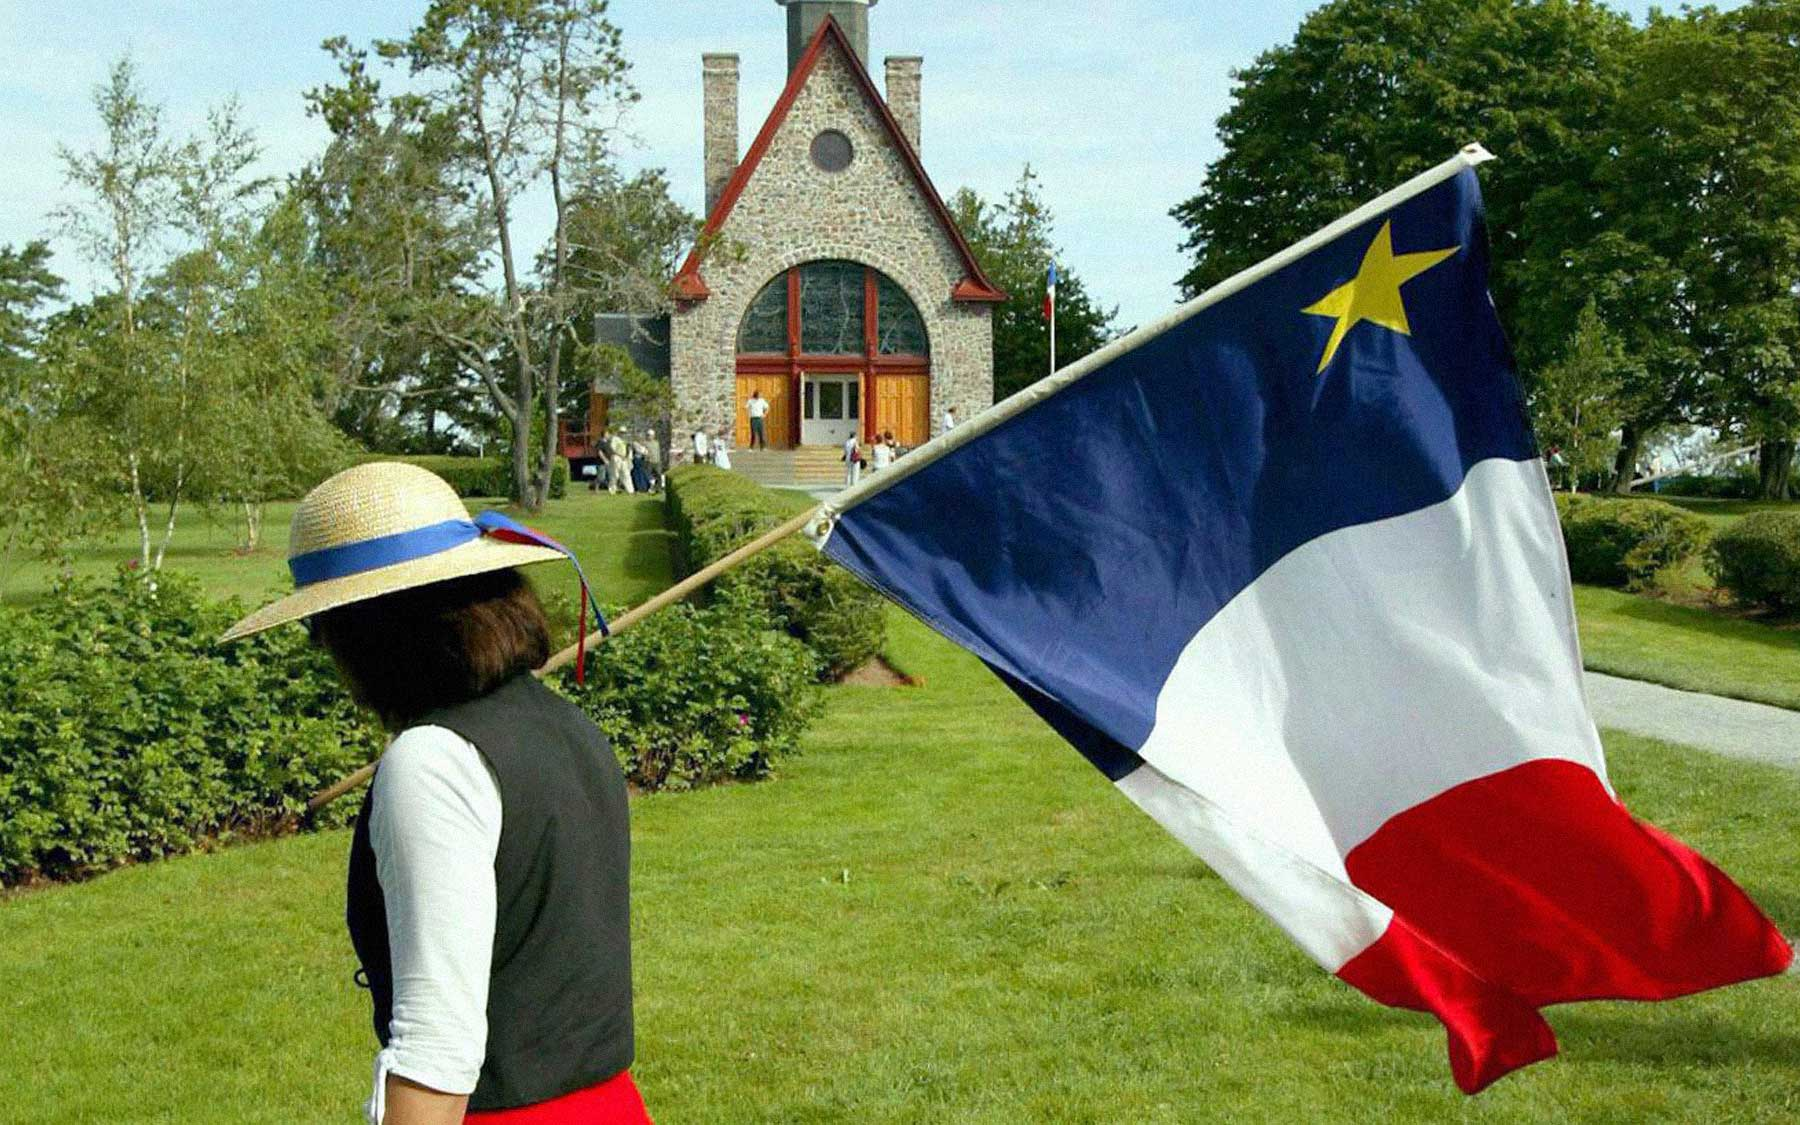 Acadian Roots - The spirit of l'Acadie runs deep in Cape Breton. As one of the province's founding cultures, there are reminders of the intrepid French settlers who first claimed Nova Scotia as their home in the seventeenth century. Explore Acadian history through historical sites, culture and language, genealogy, music, food, and crafts. Visit novascotia.com to learn more!